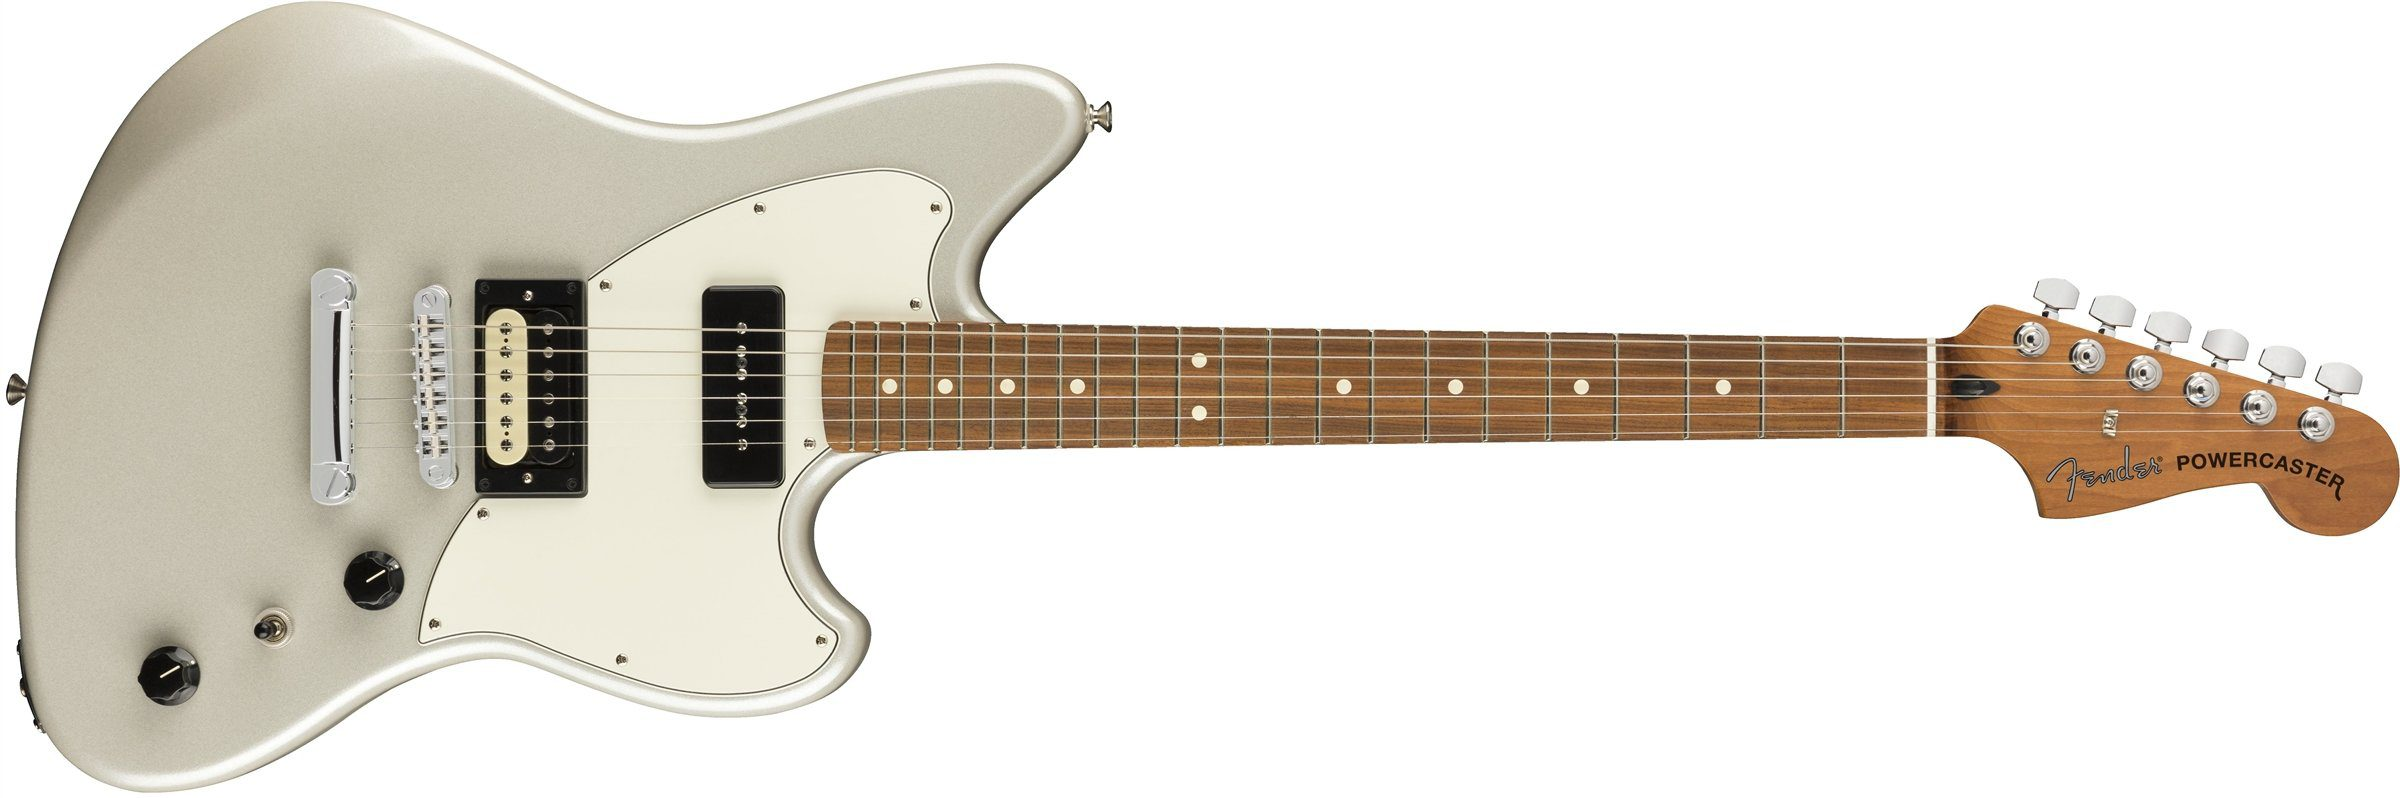 Fender-Alternate-Reality-Powercaster White Opal